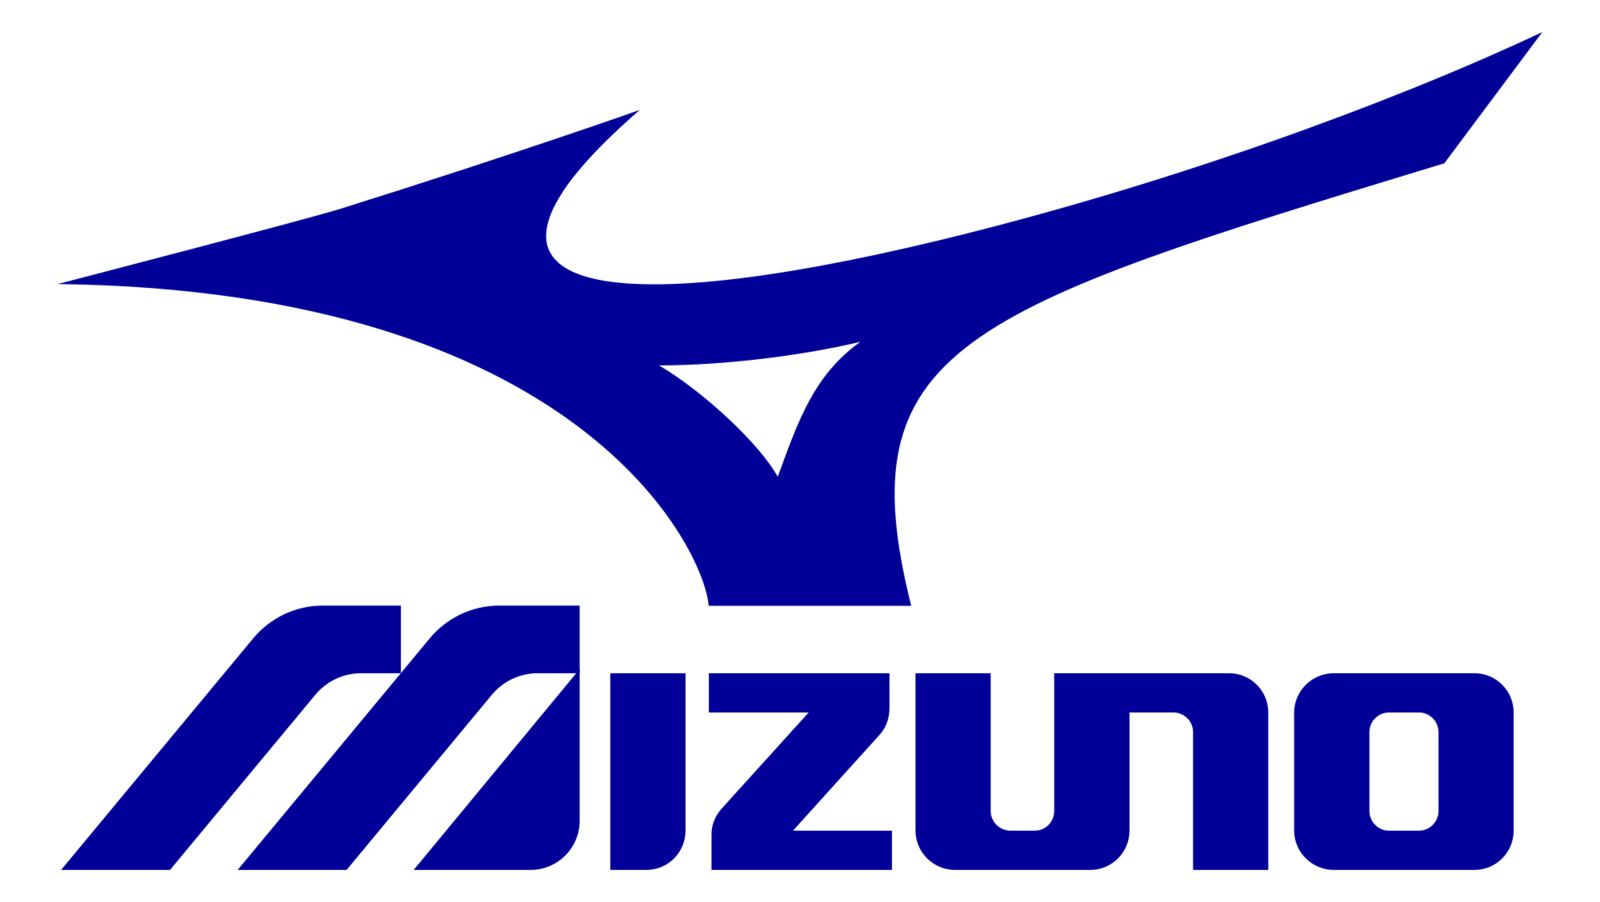 MIZUNO S'ENGAGE AVEC LA TEAM CHAMBÉ